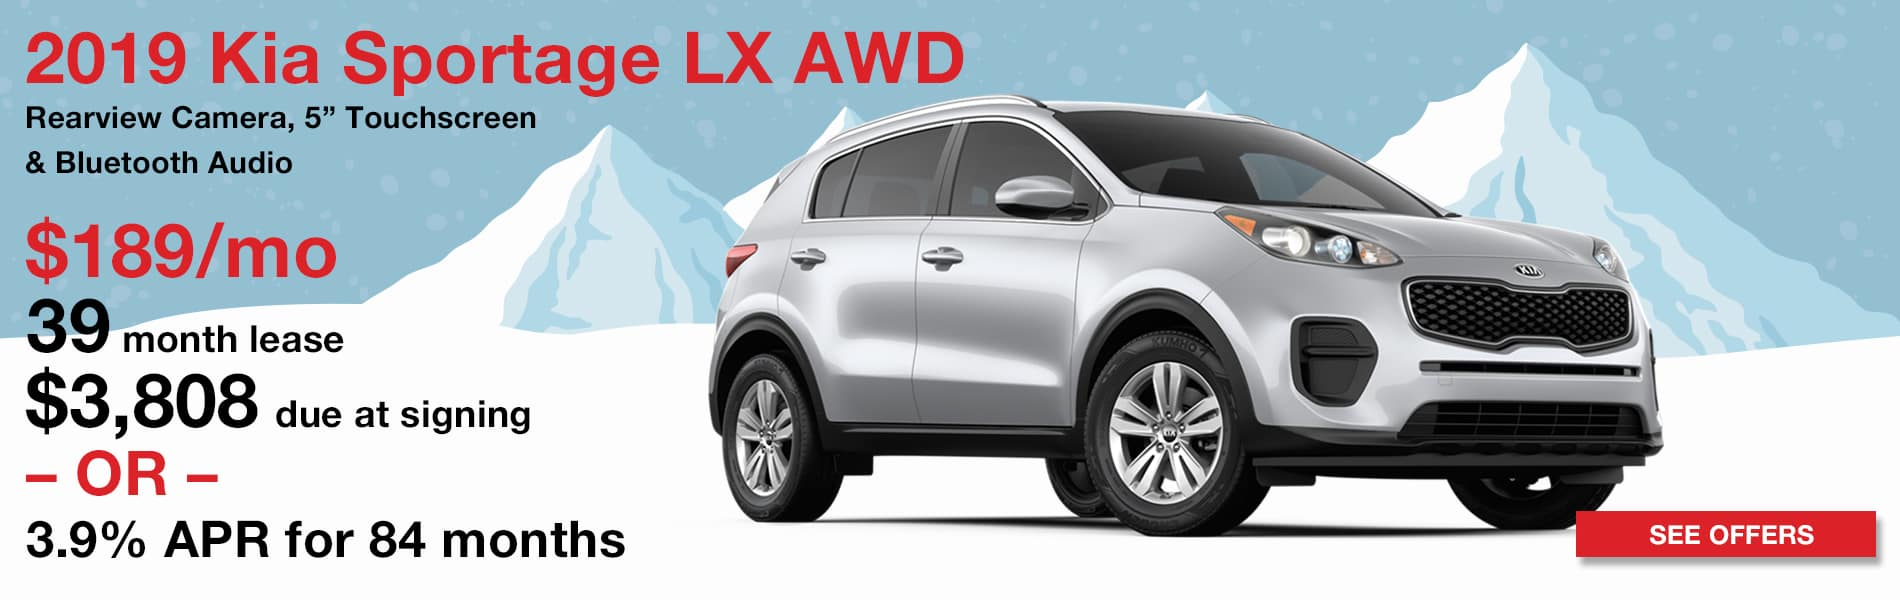 Lease a 2019 Kia Sportage LX AWD for $189 per month with $3,808 due at signing or finance for 3.9% APR for 84 months